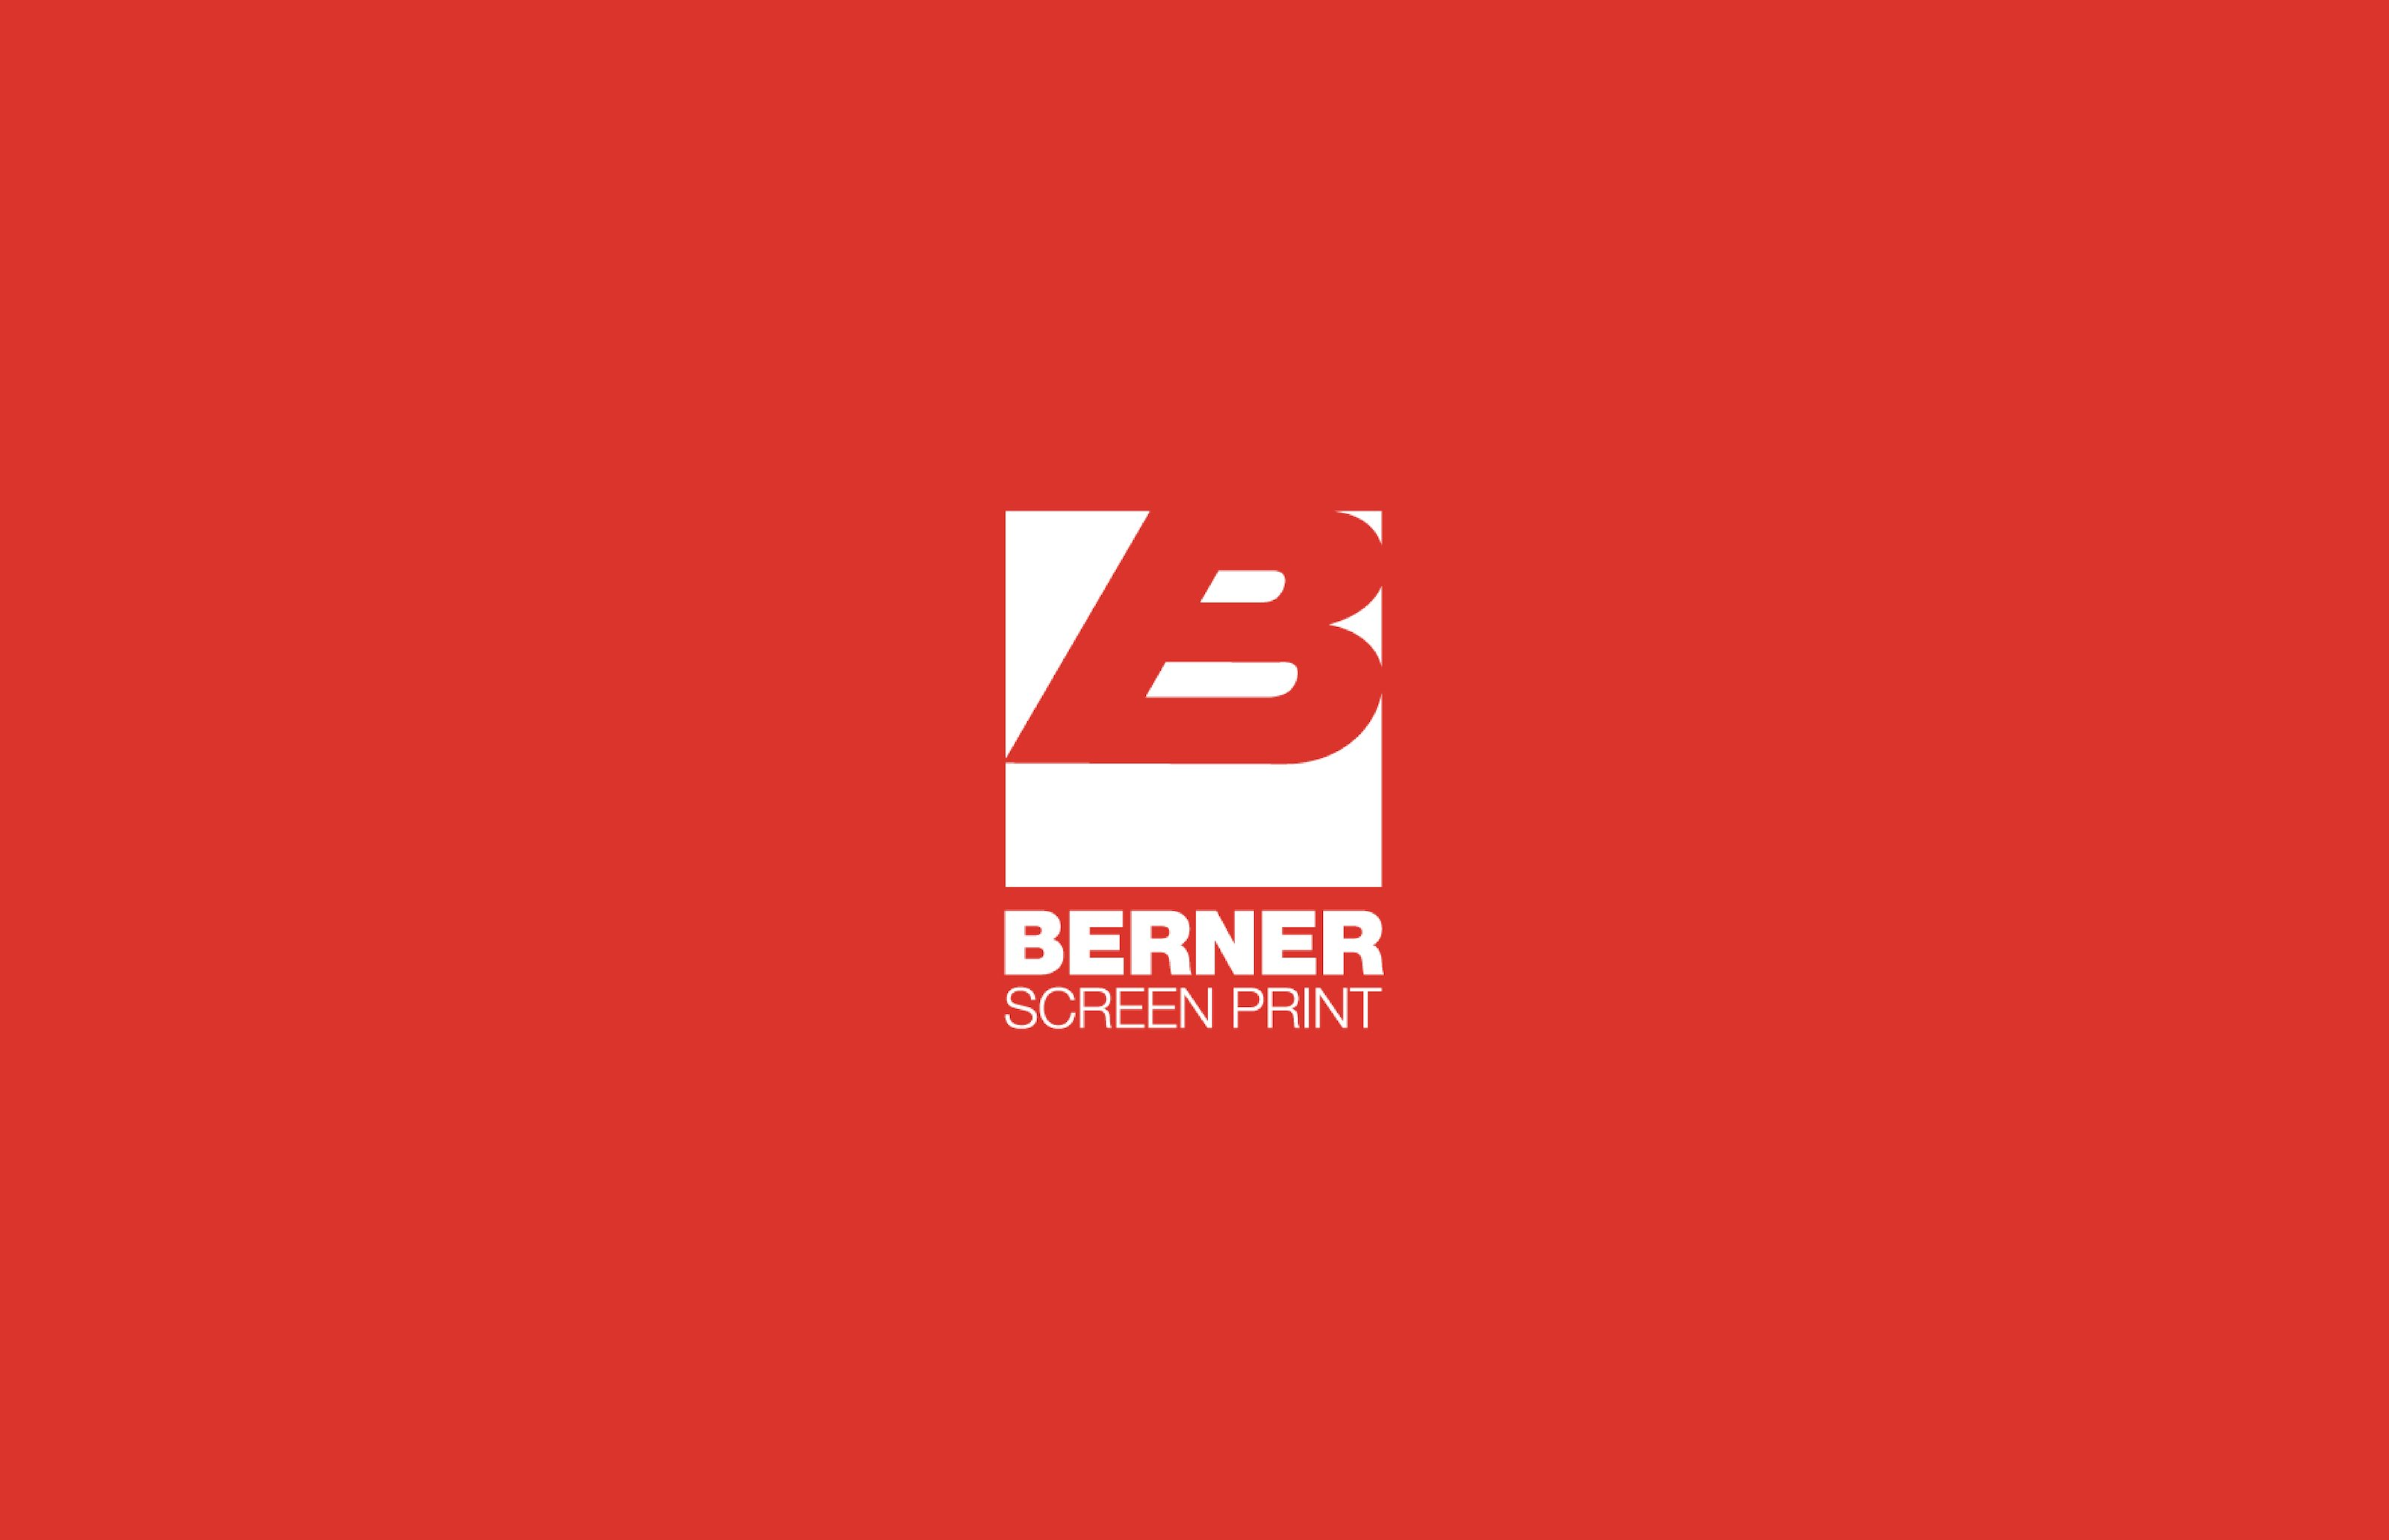 berner screen print client work cover image